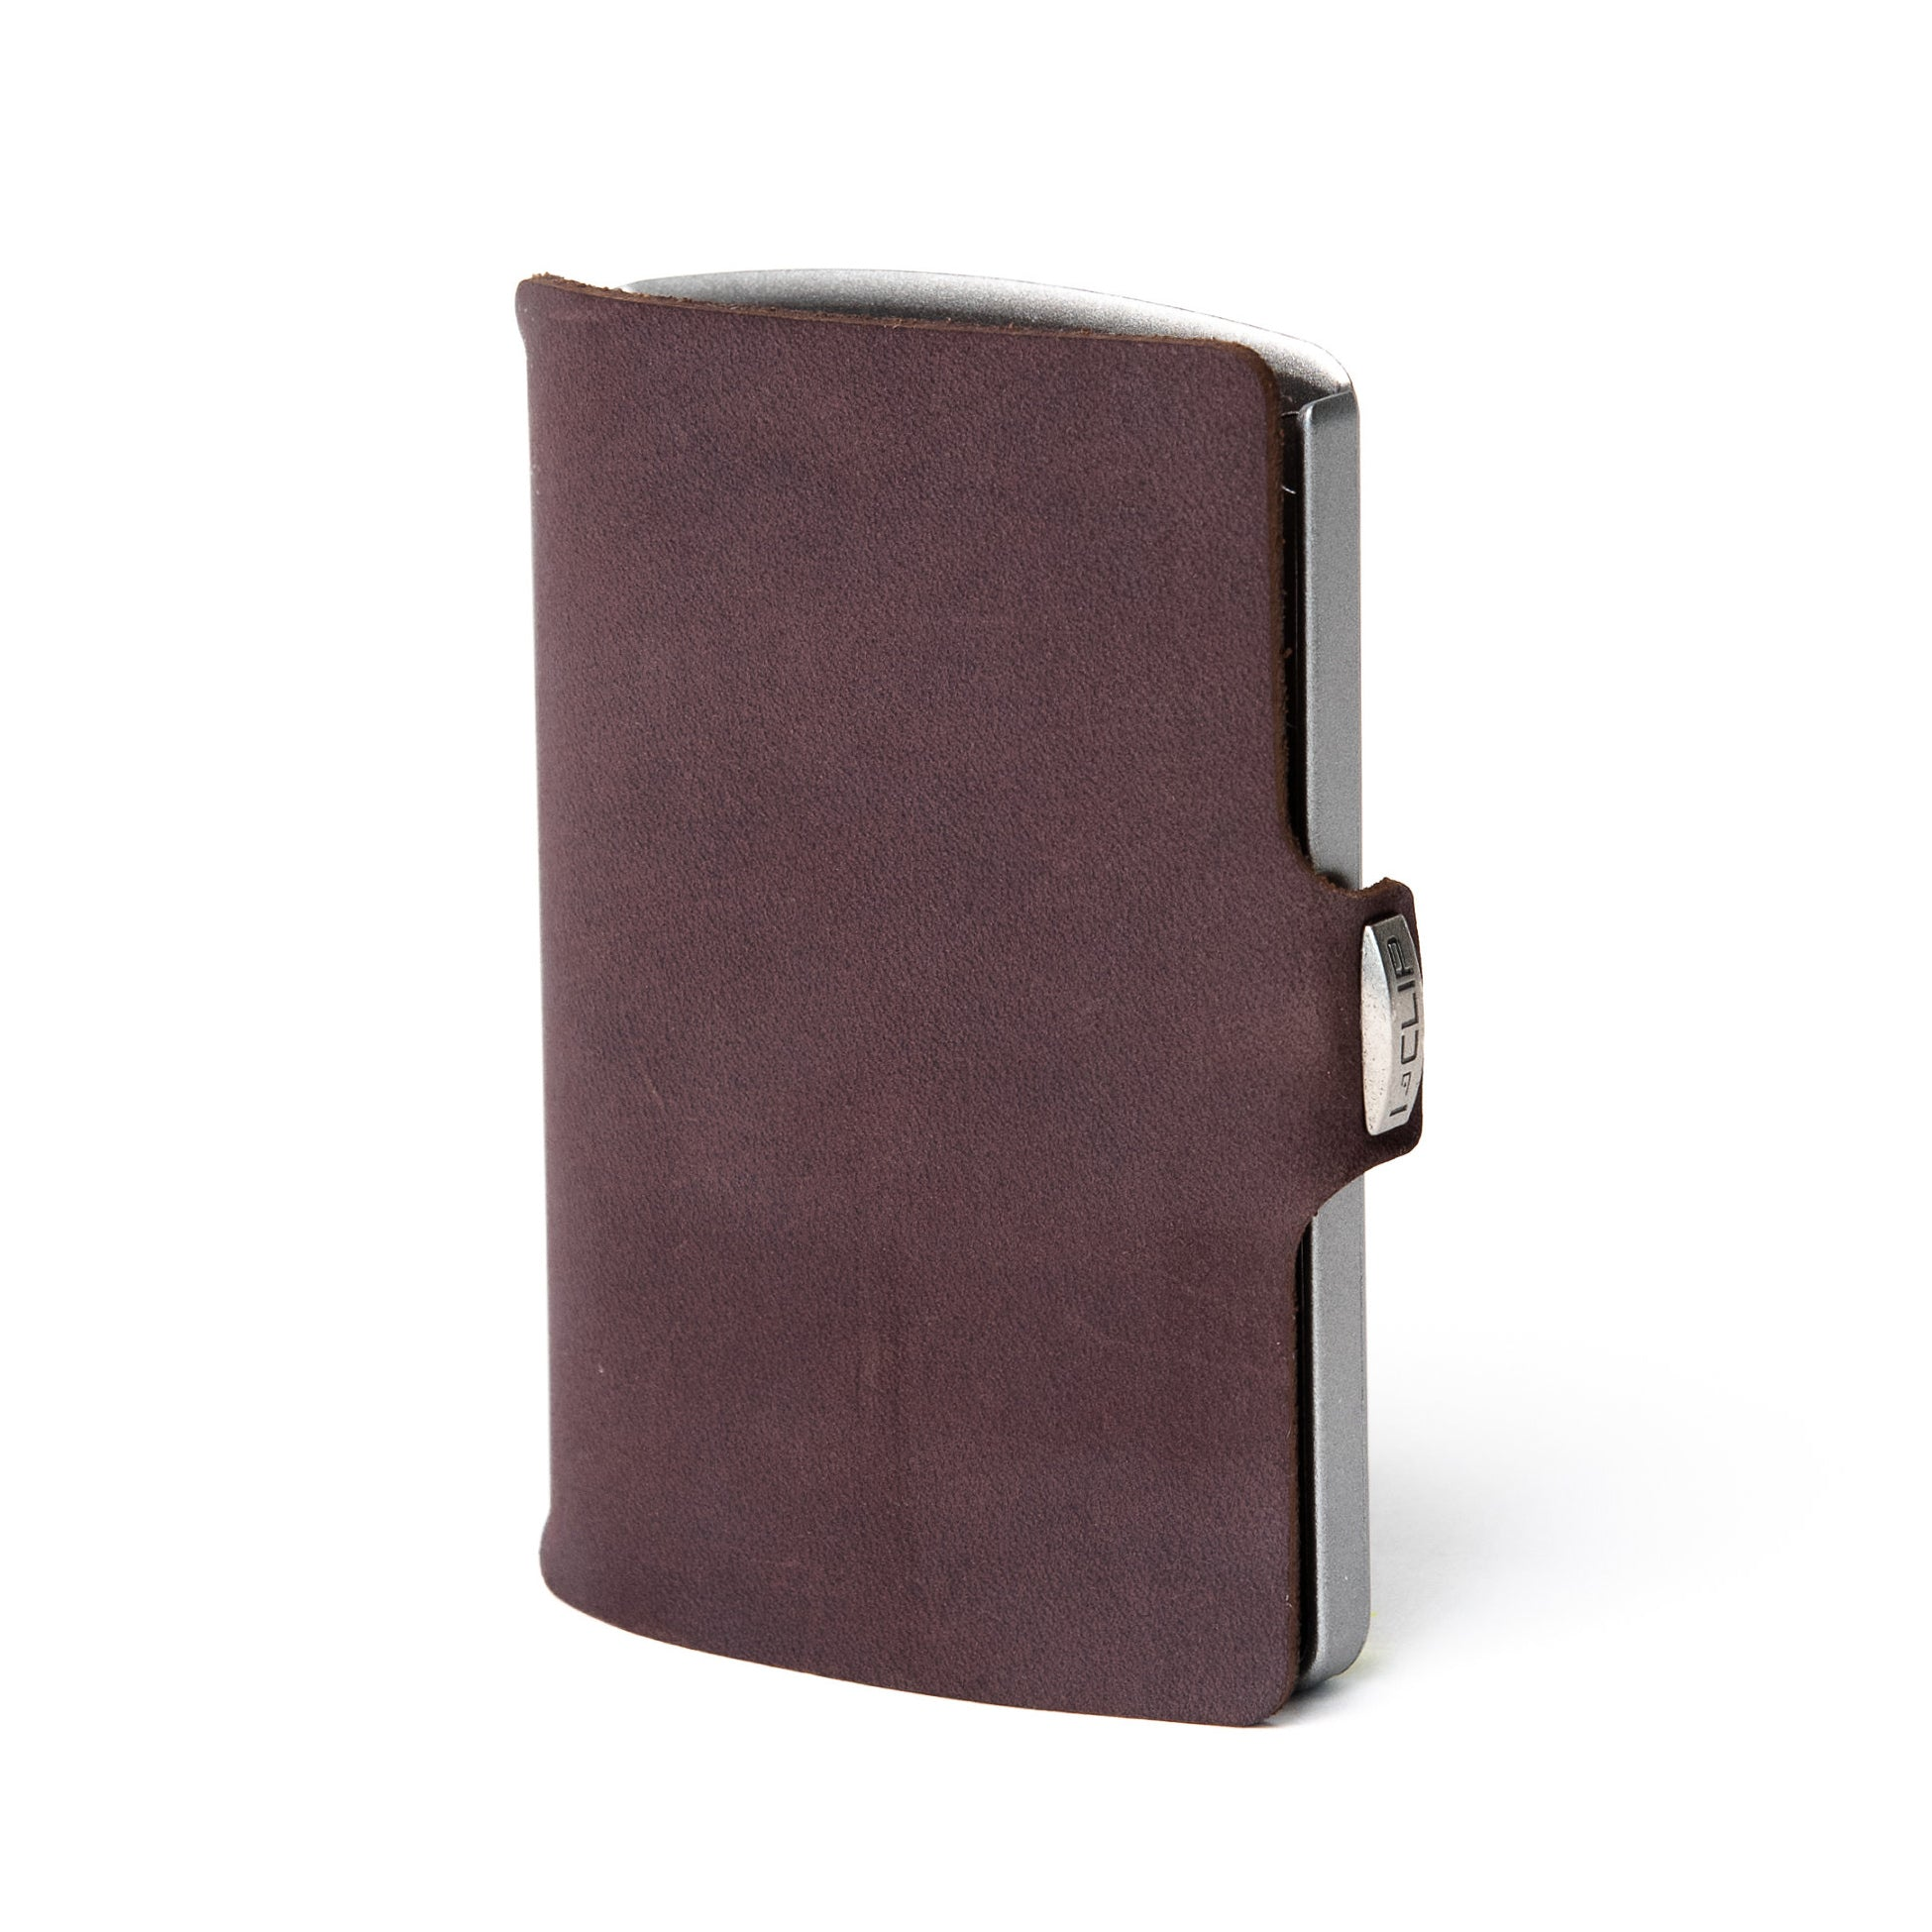 Soft Touch Leather - Brown / Metallic Gray Frame - I-CLIP